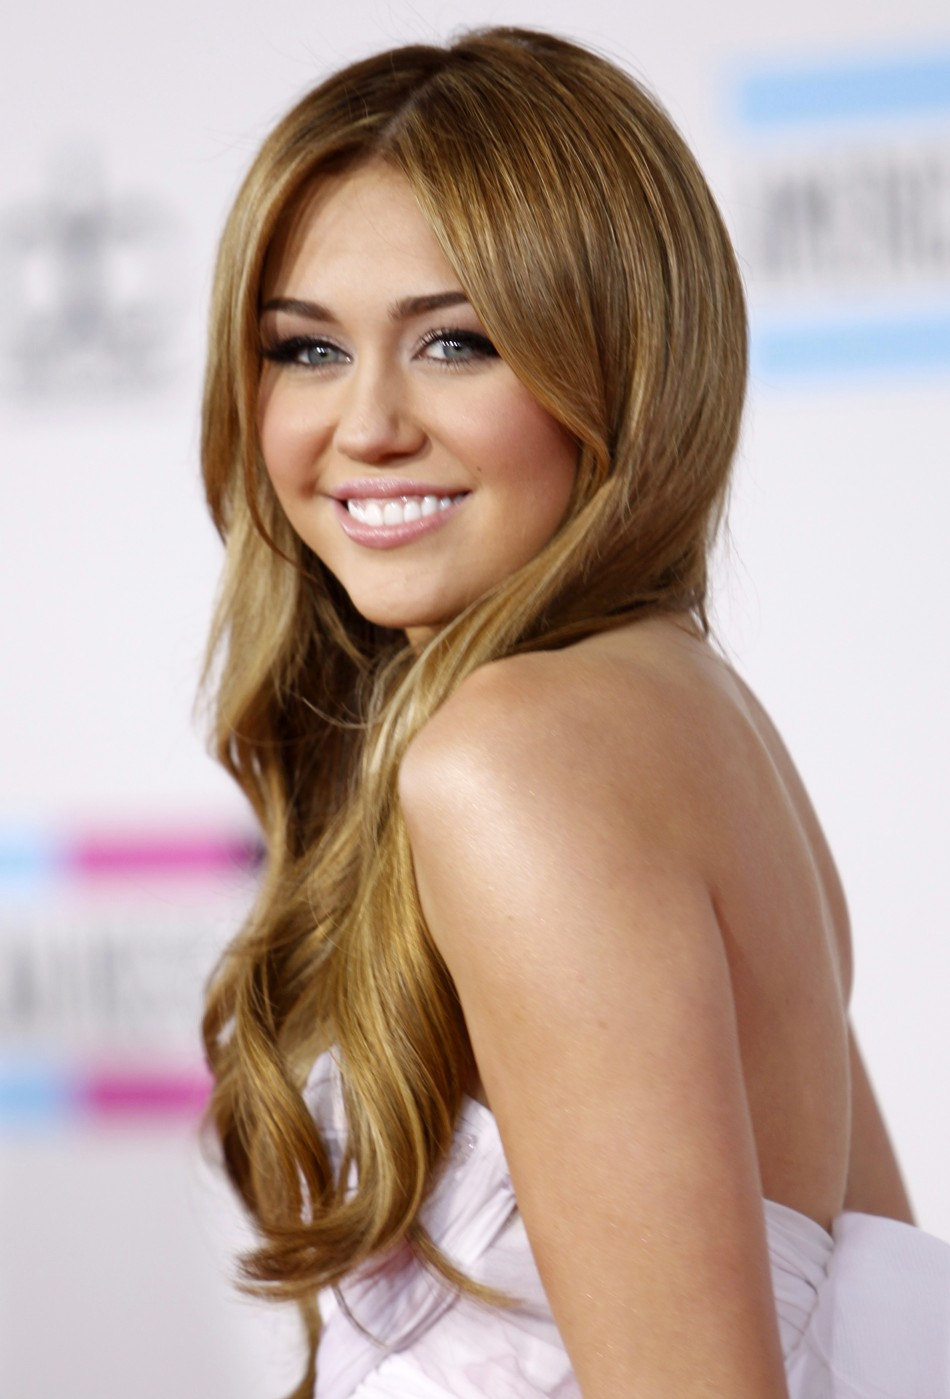 Miley Cyrus Hair Transformation